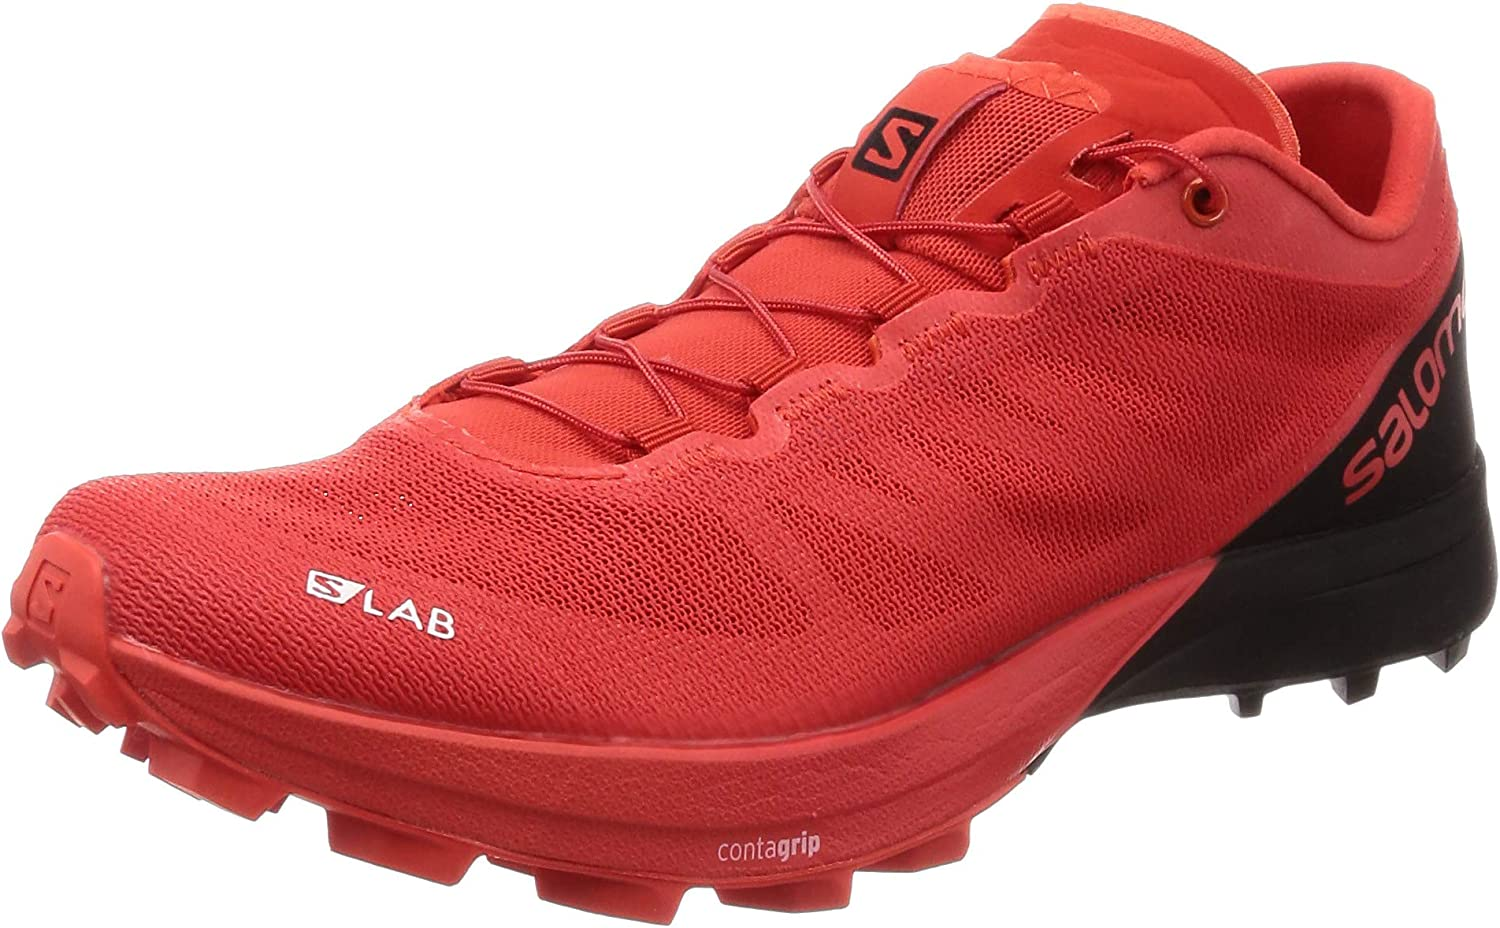 Salomon Unisex S LAB Sense 7 SG Trail Running Shoe